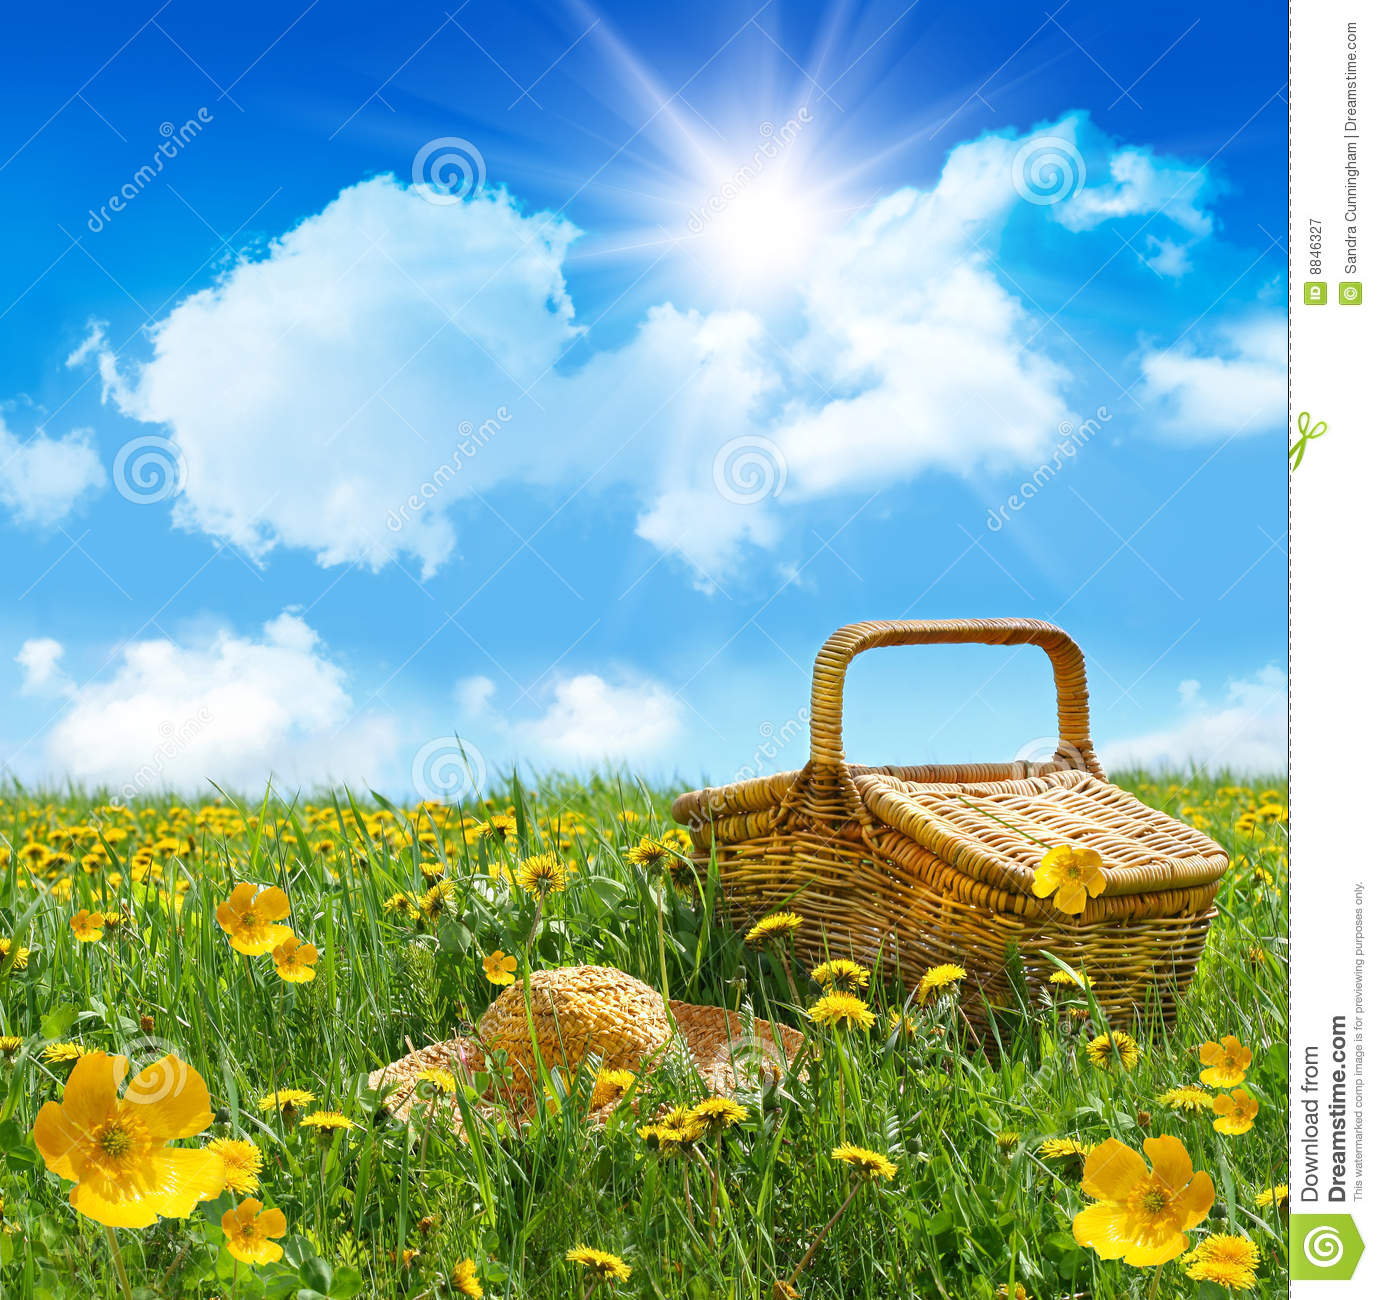 Summer Picnic Basket With Straw Hat In A Field Royalty